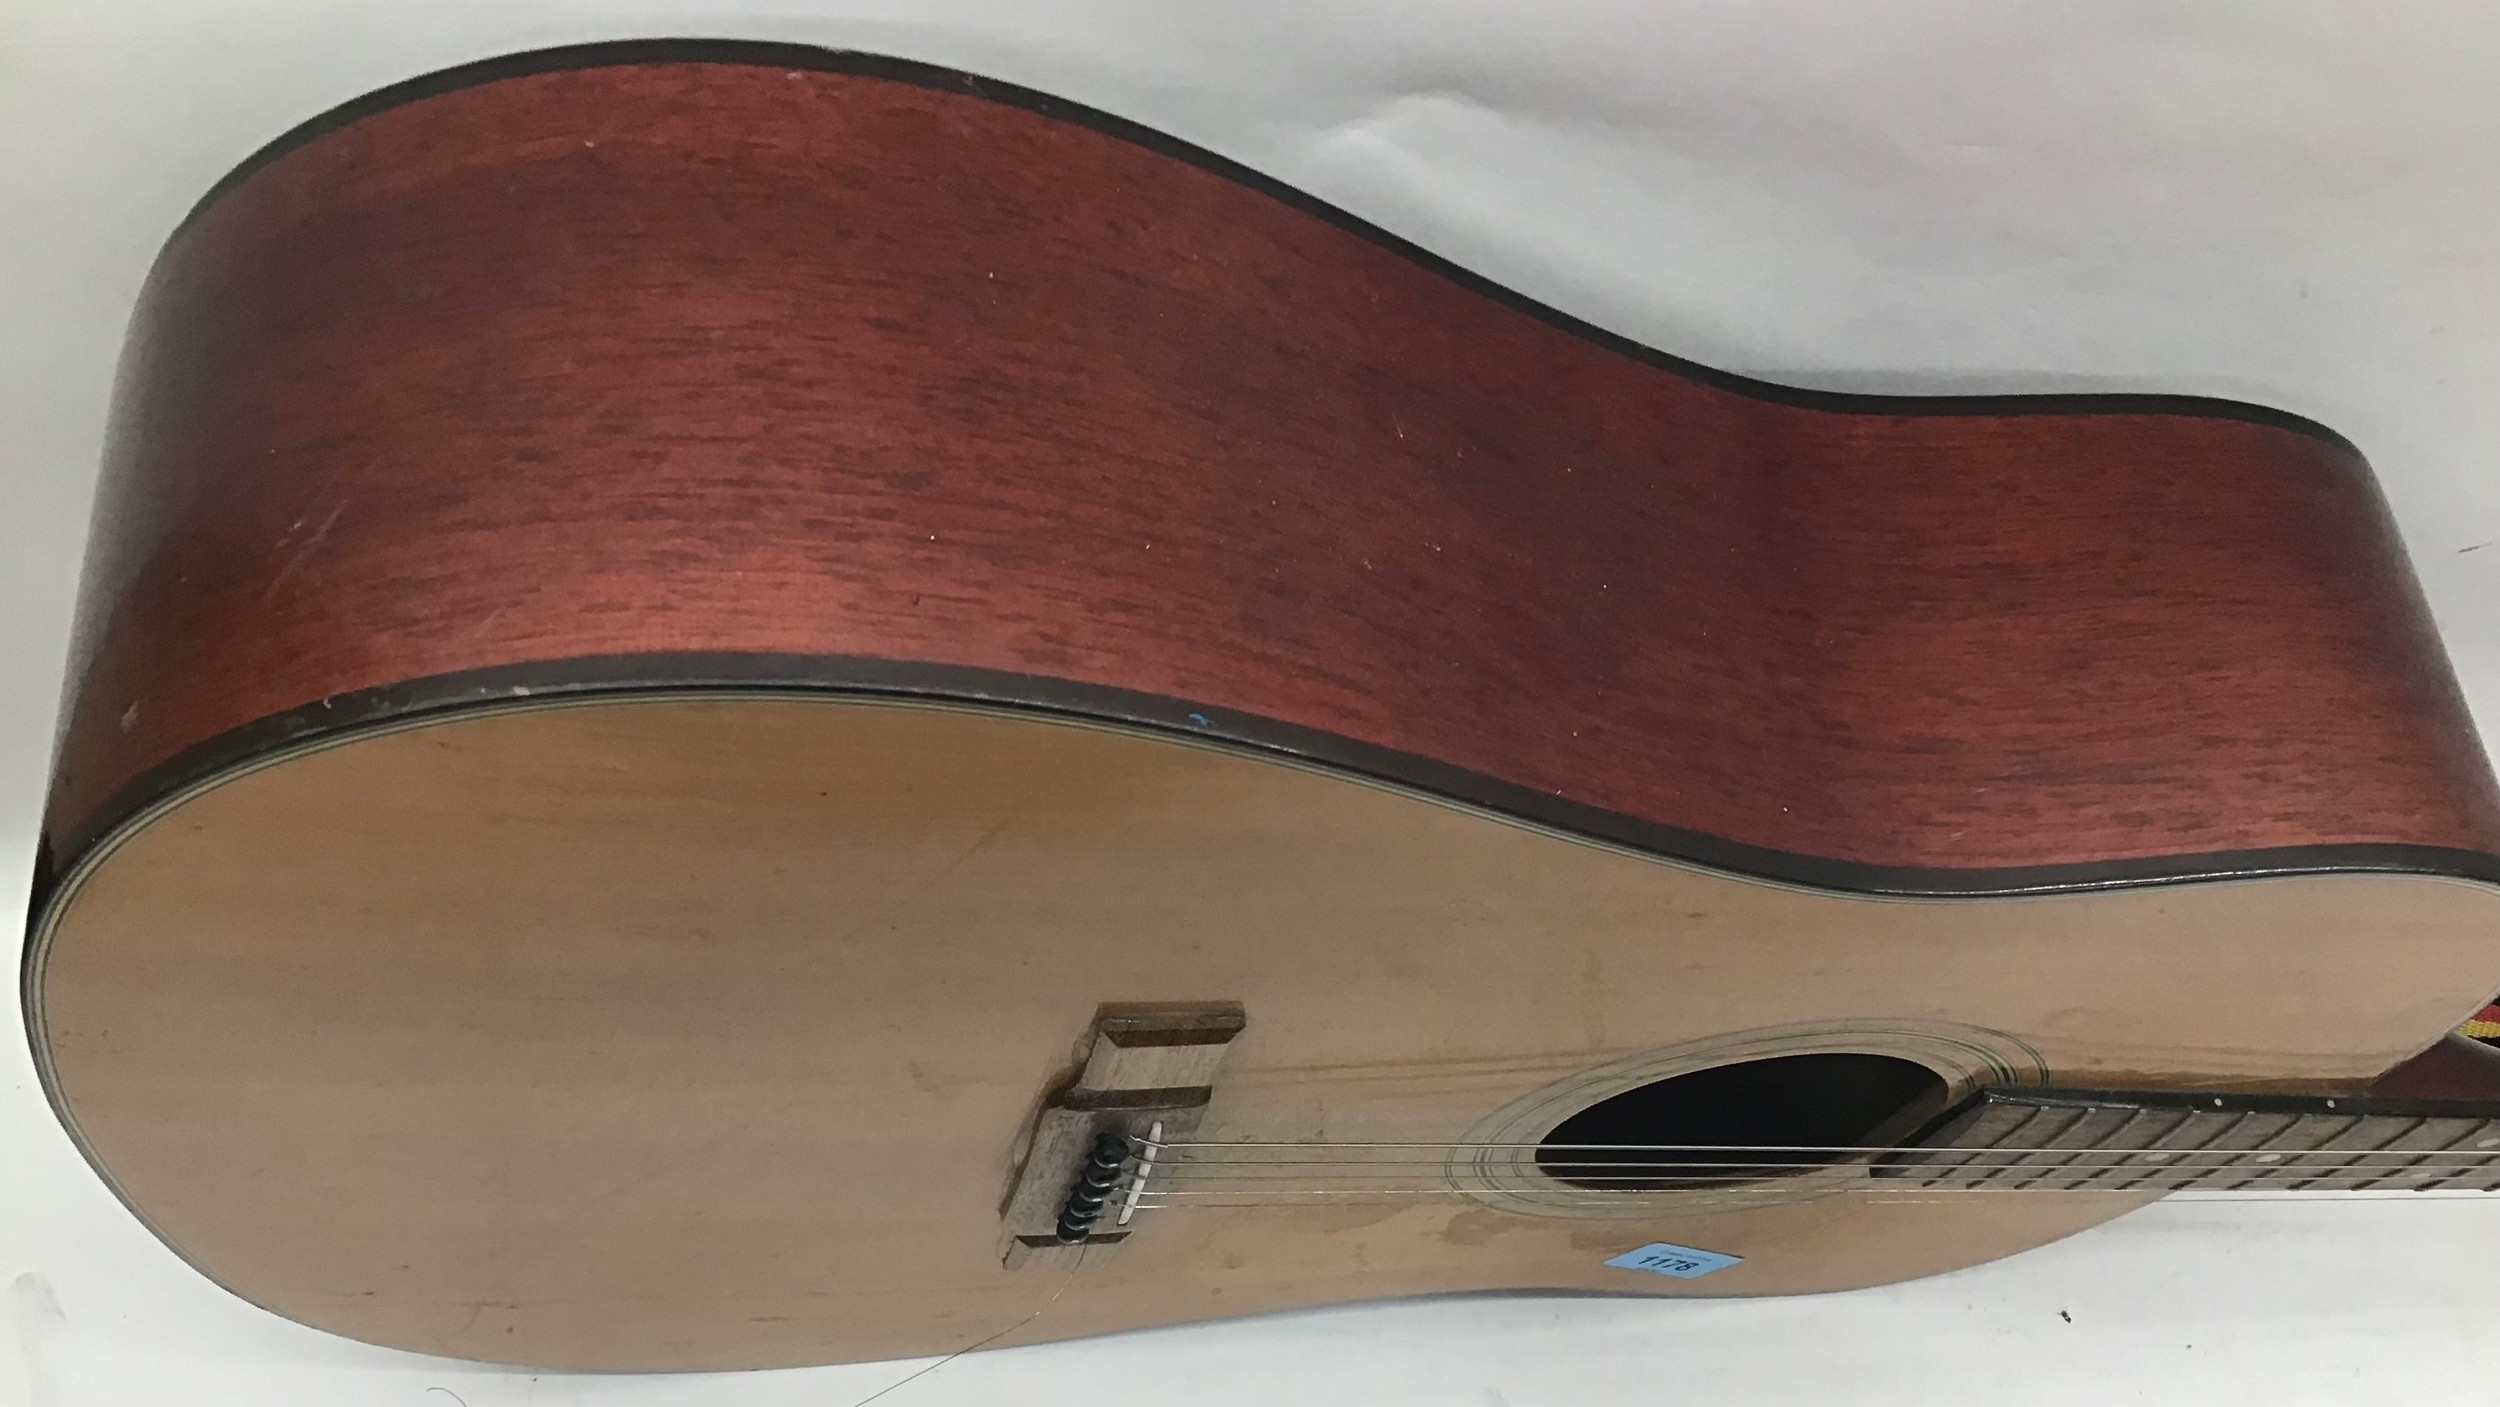 WASHBURN ACOUSTIC GUITAR. This 6 stringed guitar is finished in rosewood and comes with a strap. - Image 6 of 6